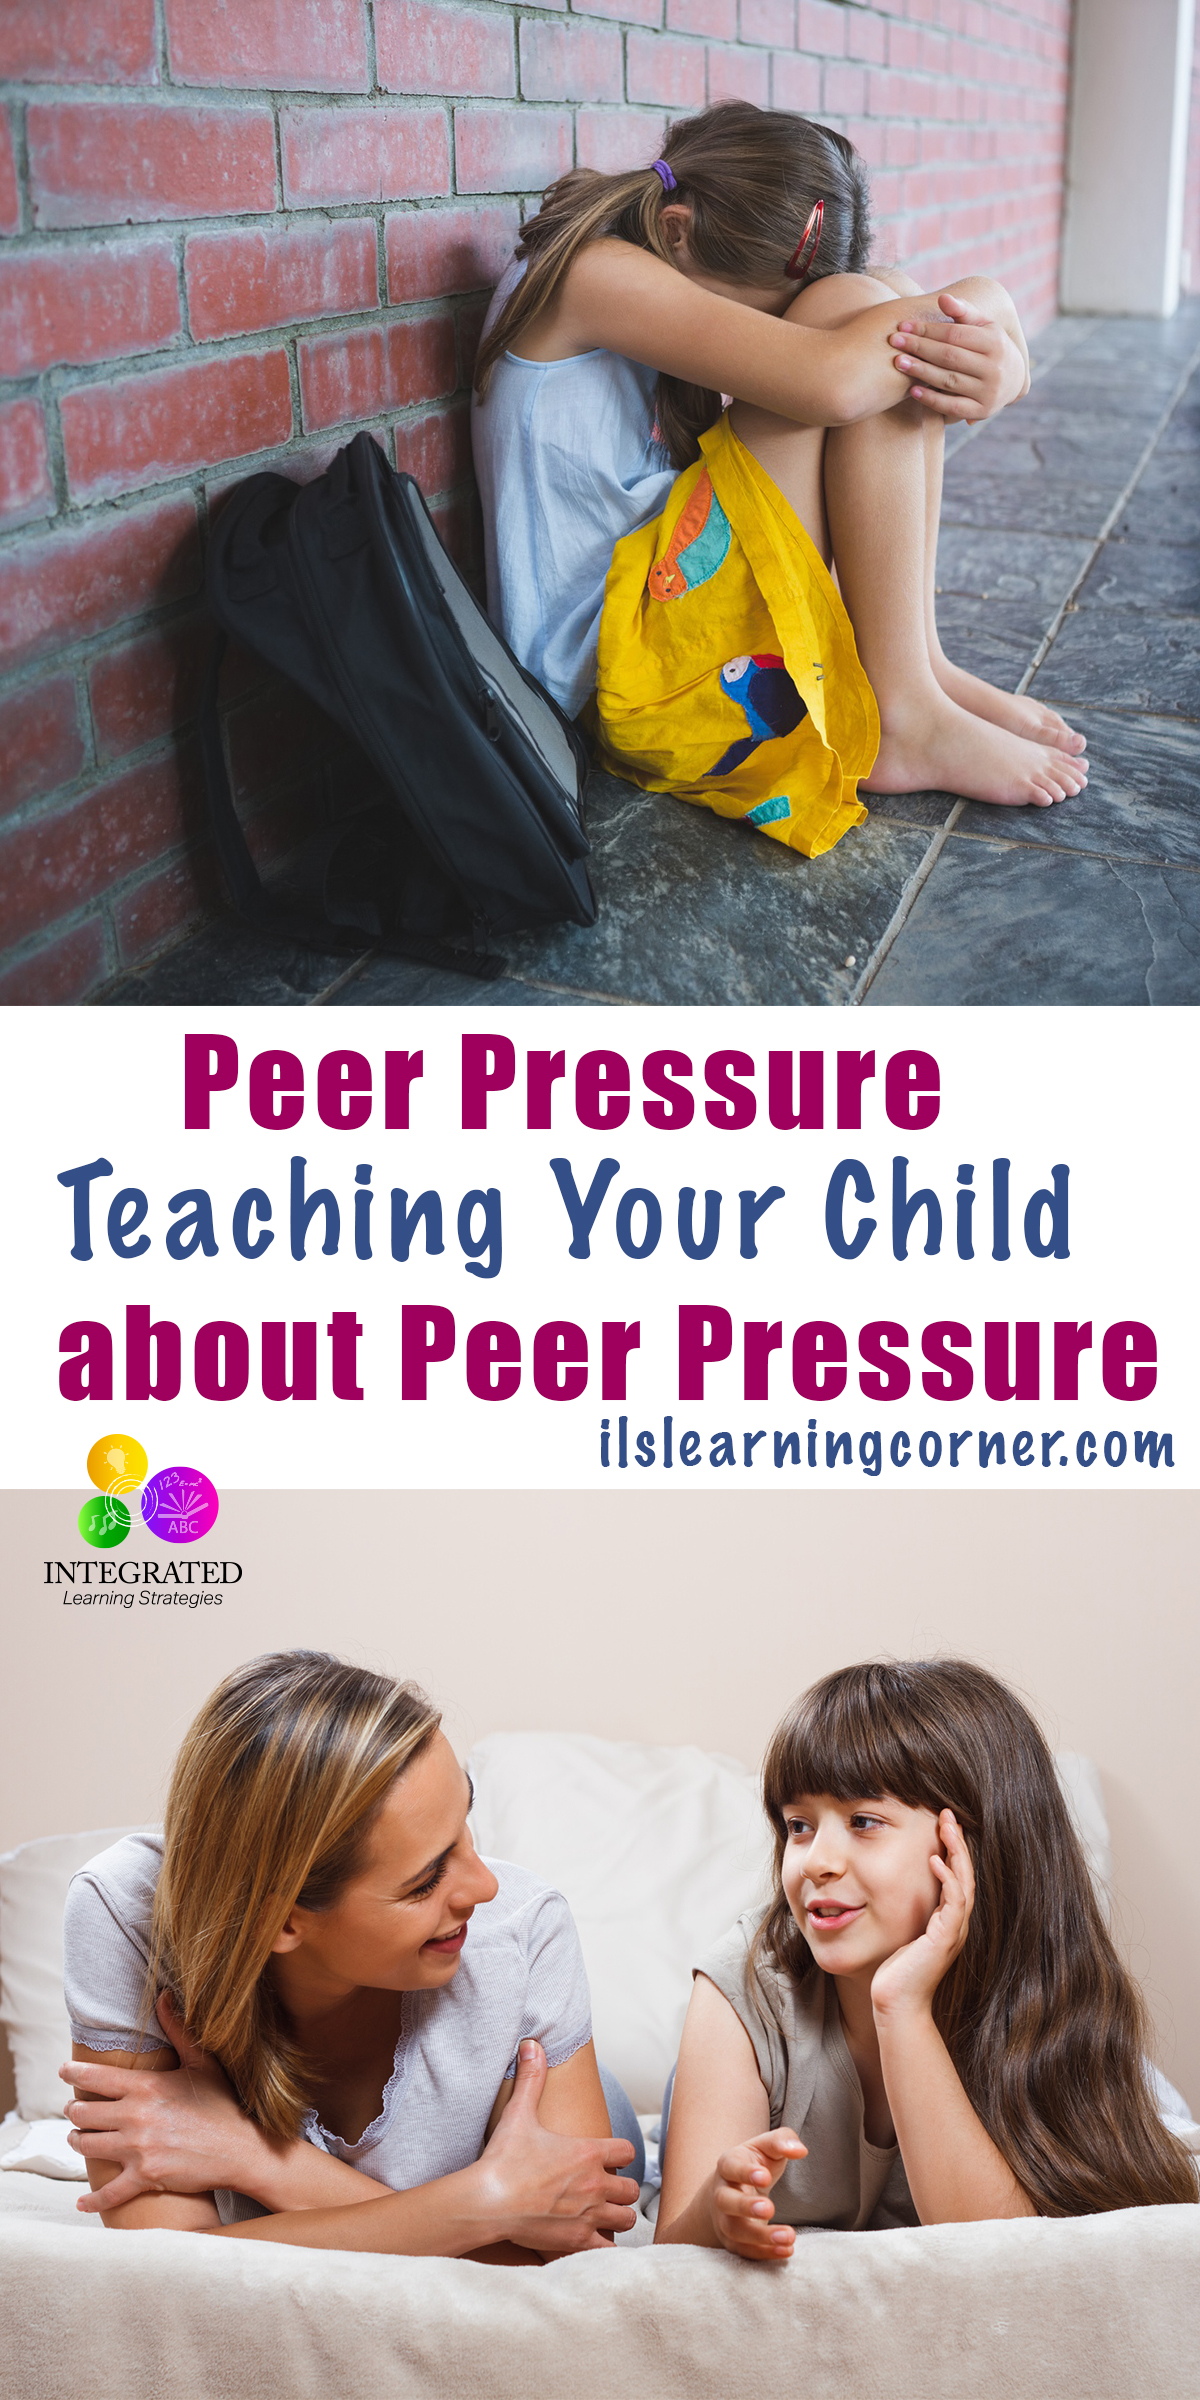 Peer Pressure: Teaching Your Child about Peer Pressure ...